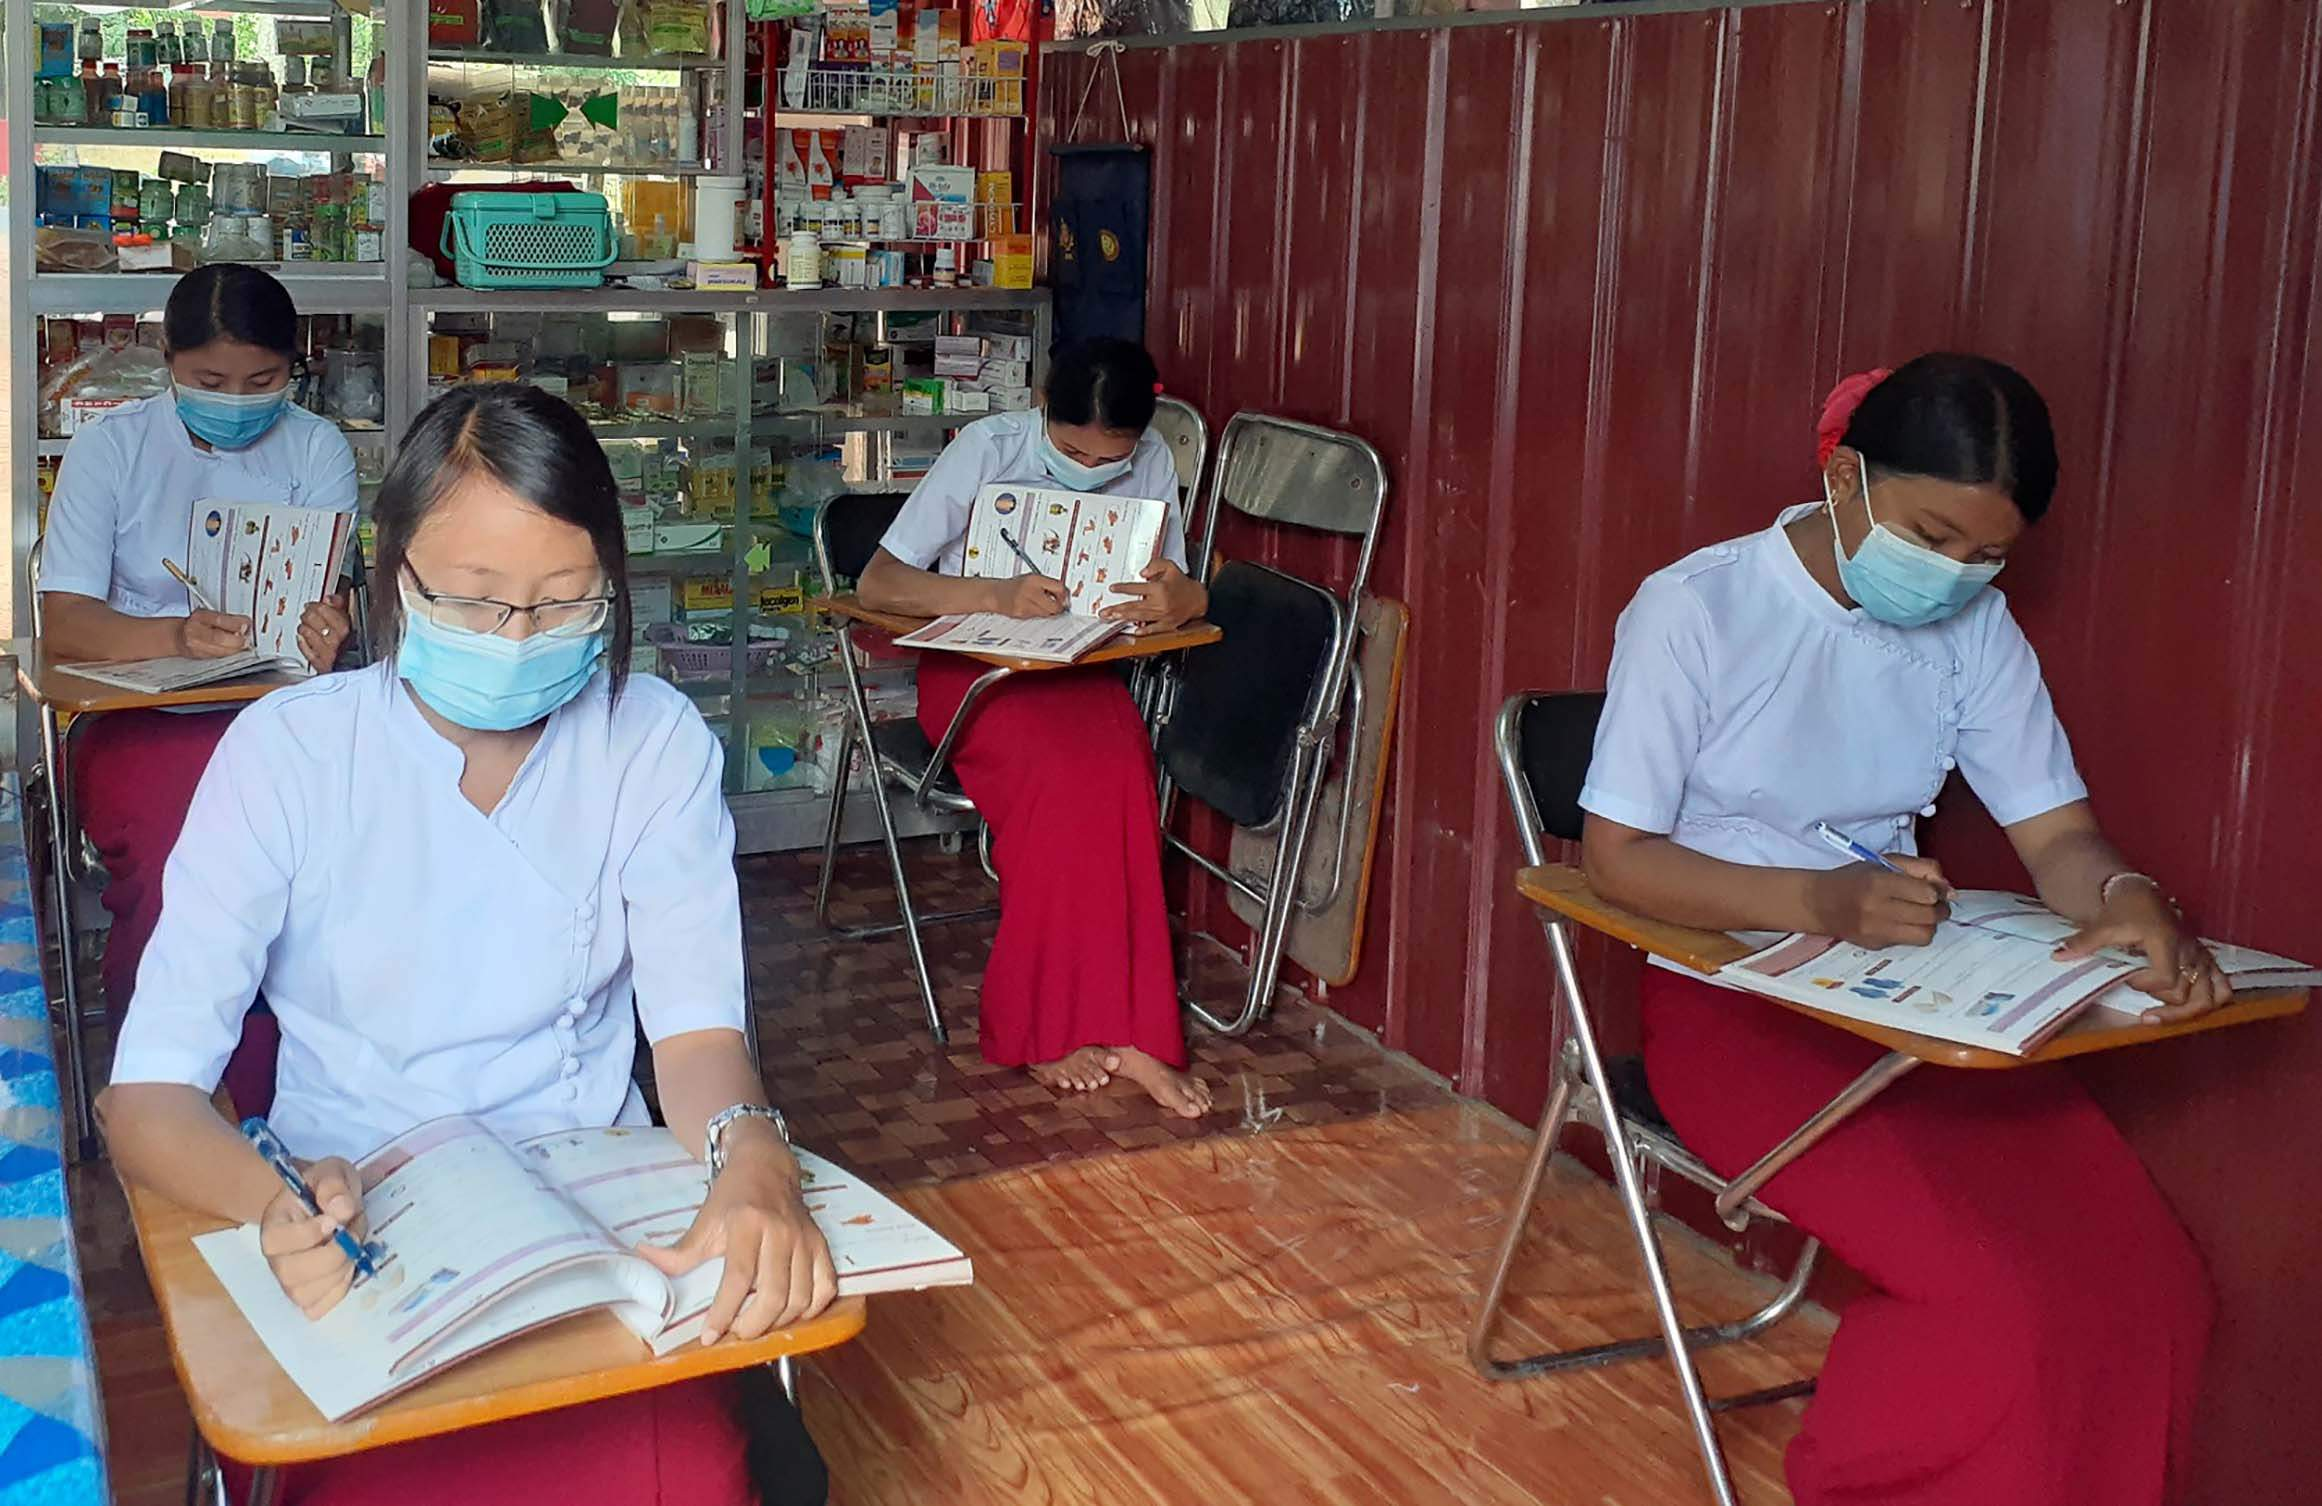 MPRL E&P Pte Ltd., is helping locals with nurse-aid training courses in Mann oilfield.Photo : MNA